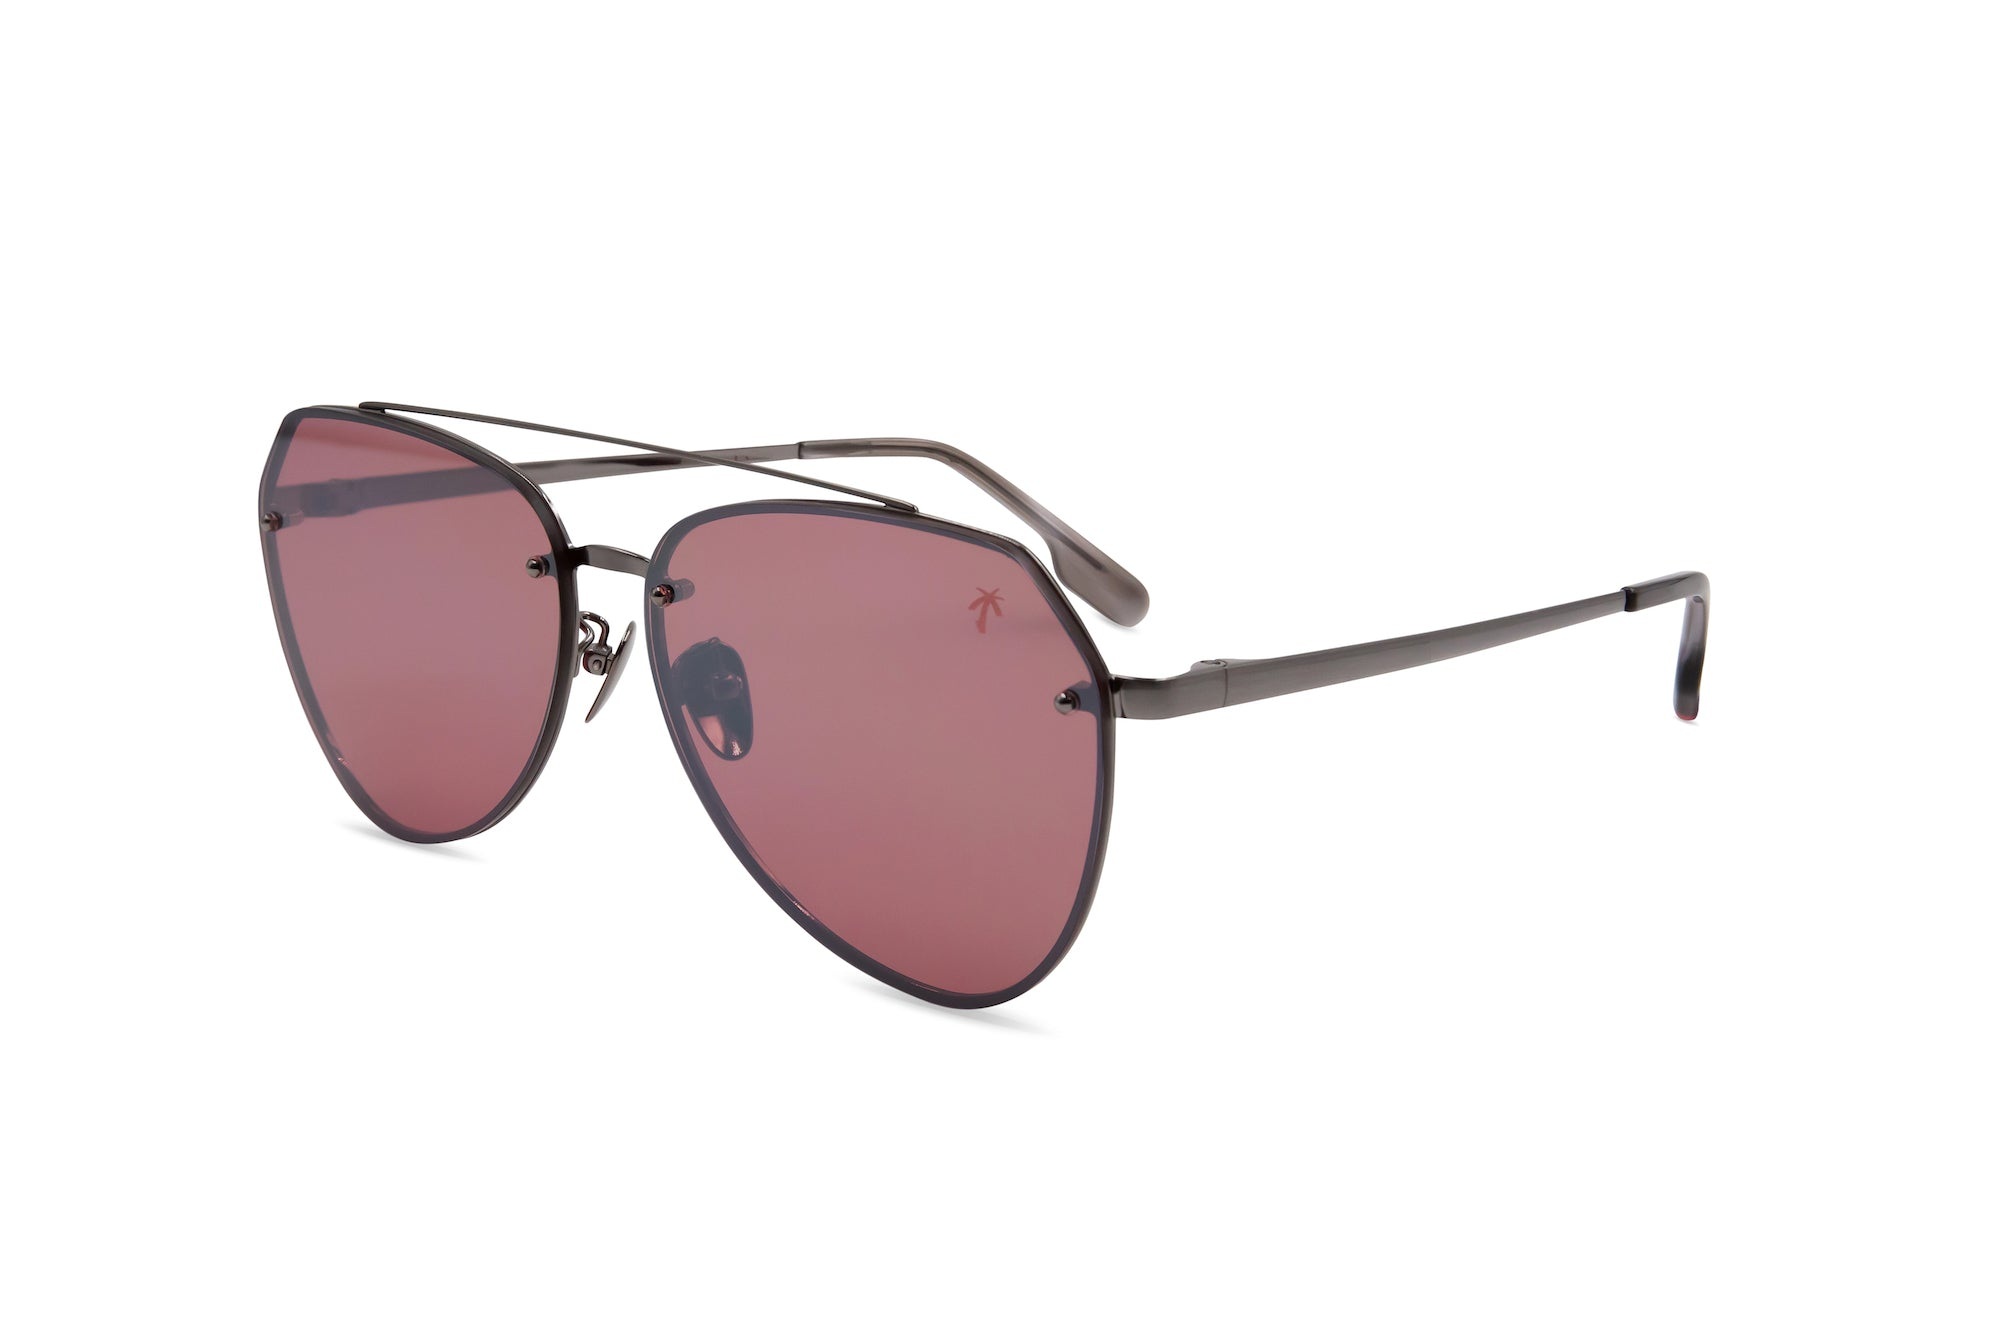 Doheny in Pink - Peppertint - Designer sunglasses